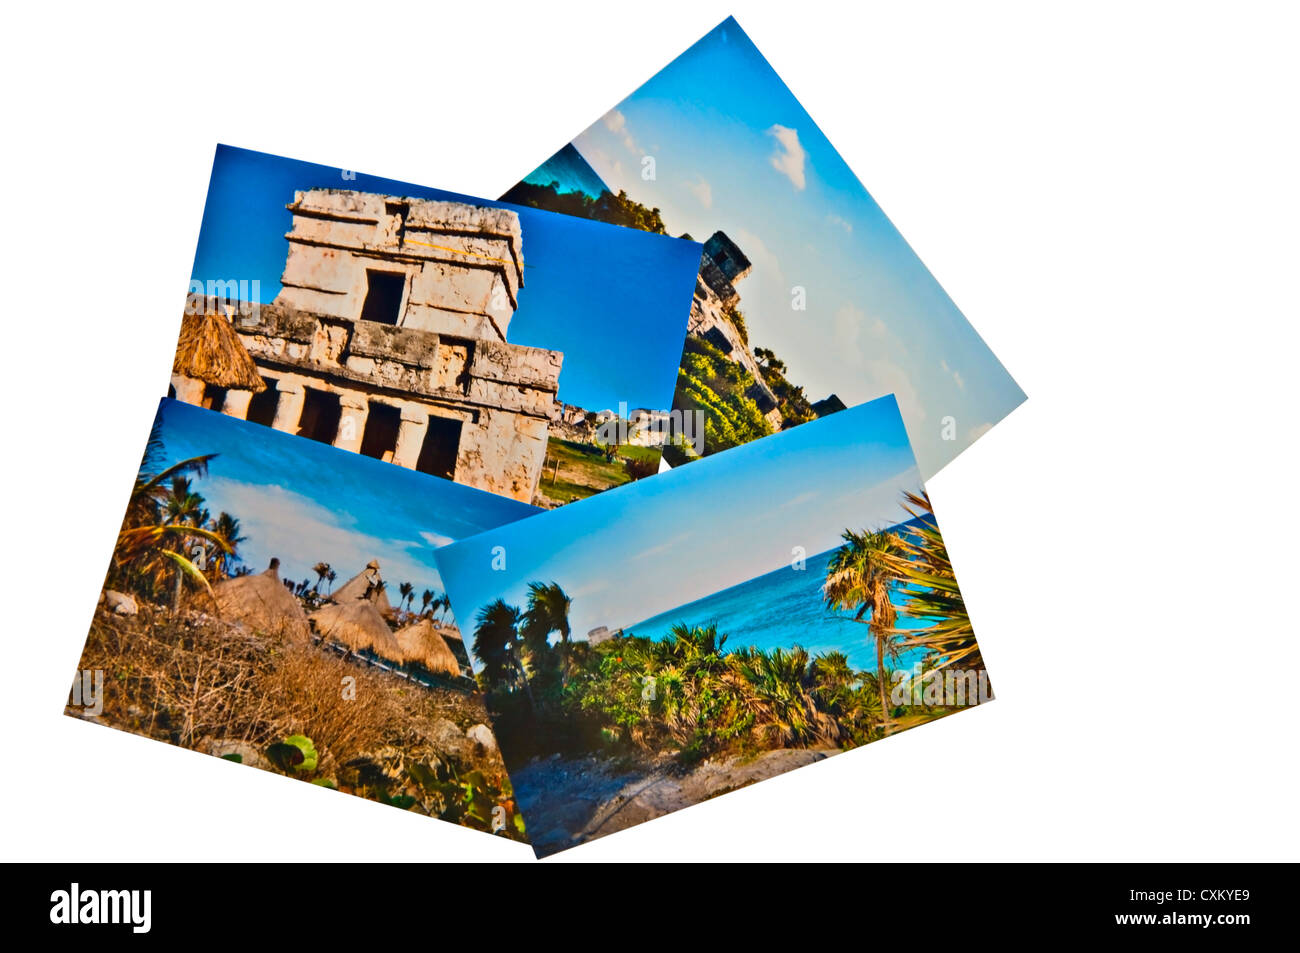 Travel Photos from Mexico, Chichen Itza, Mayan Ruins. - Stock Image